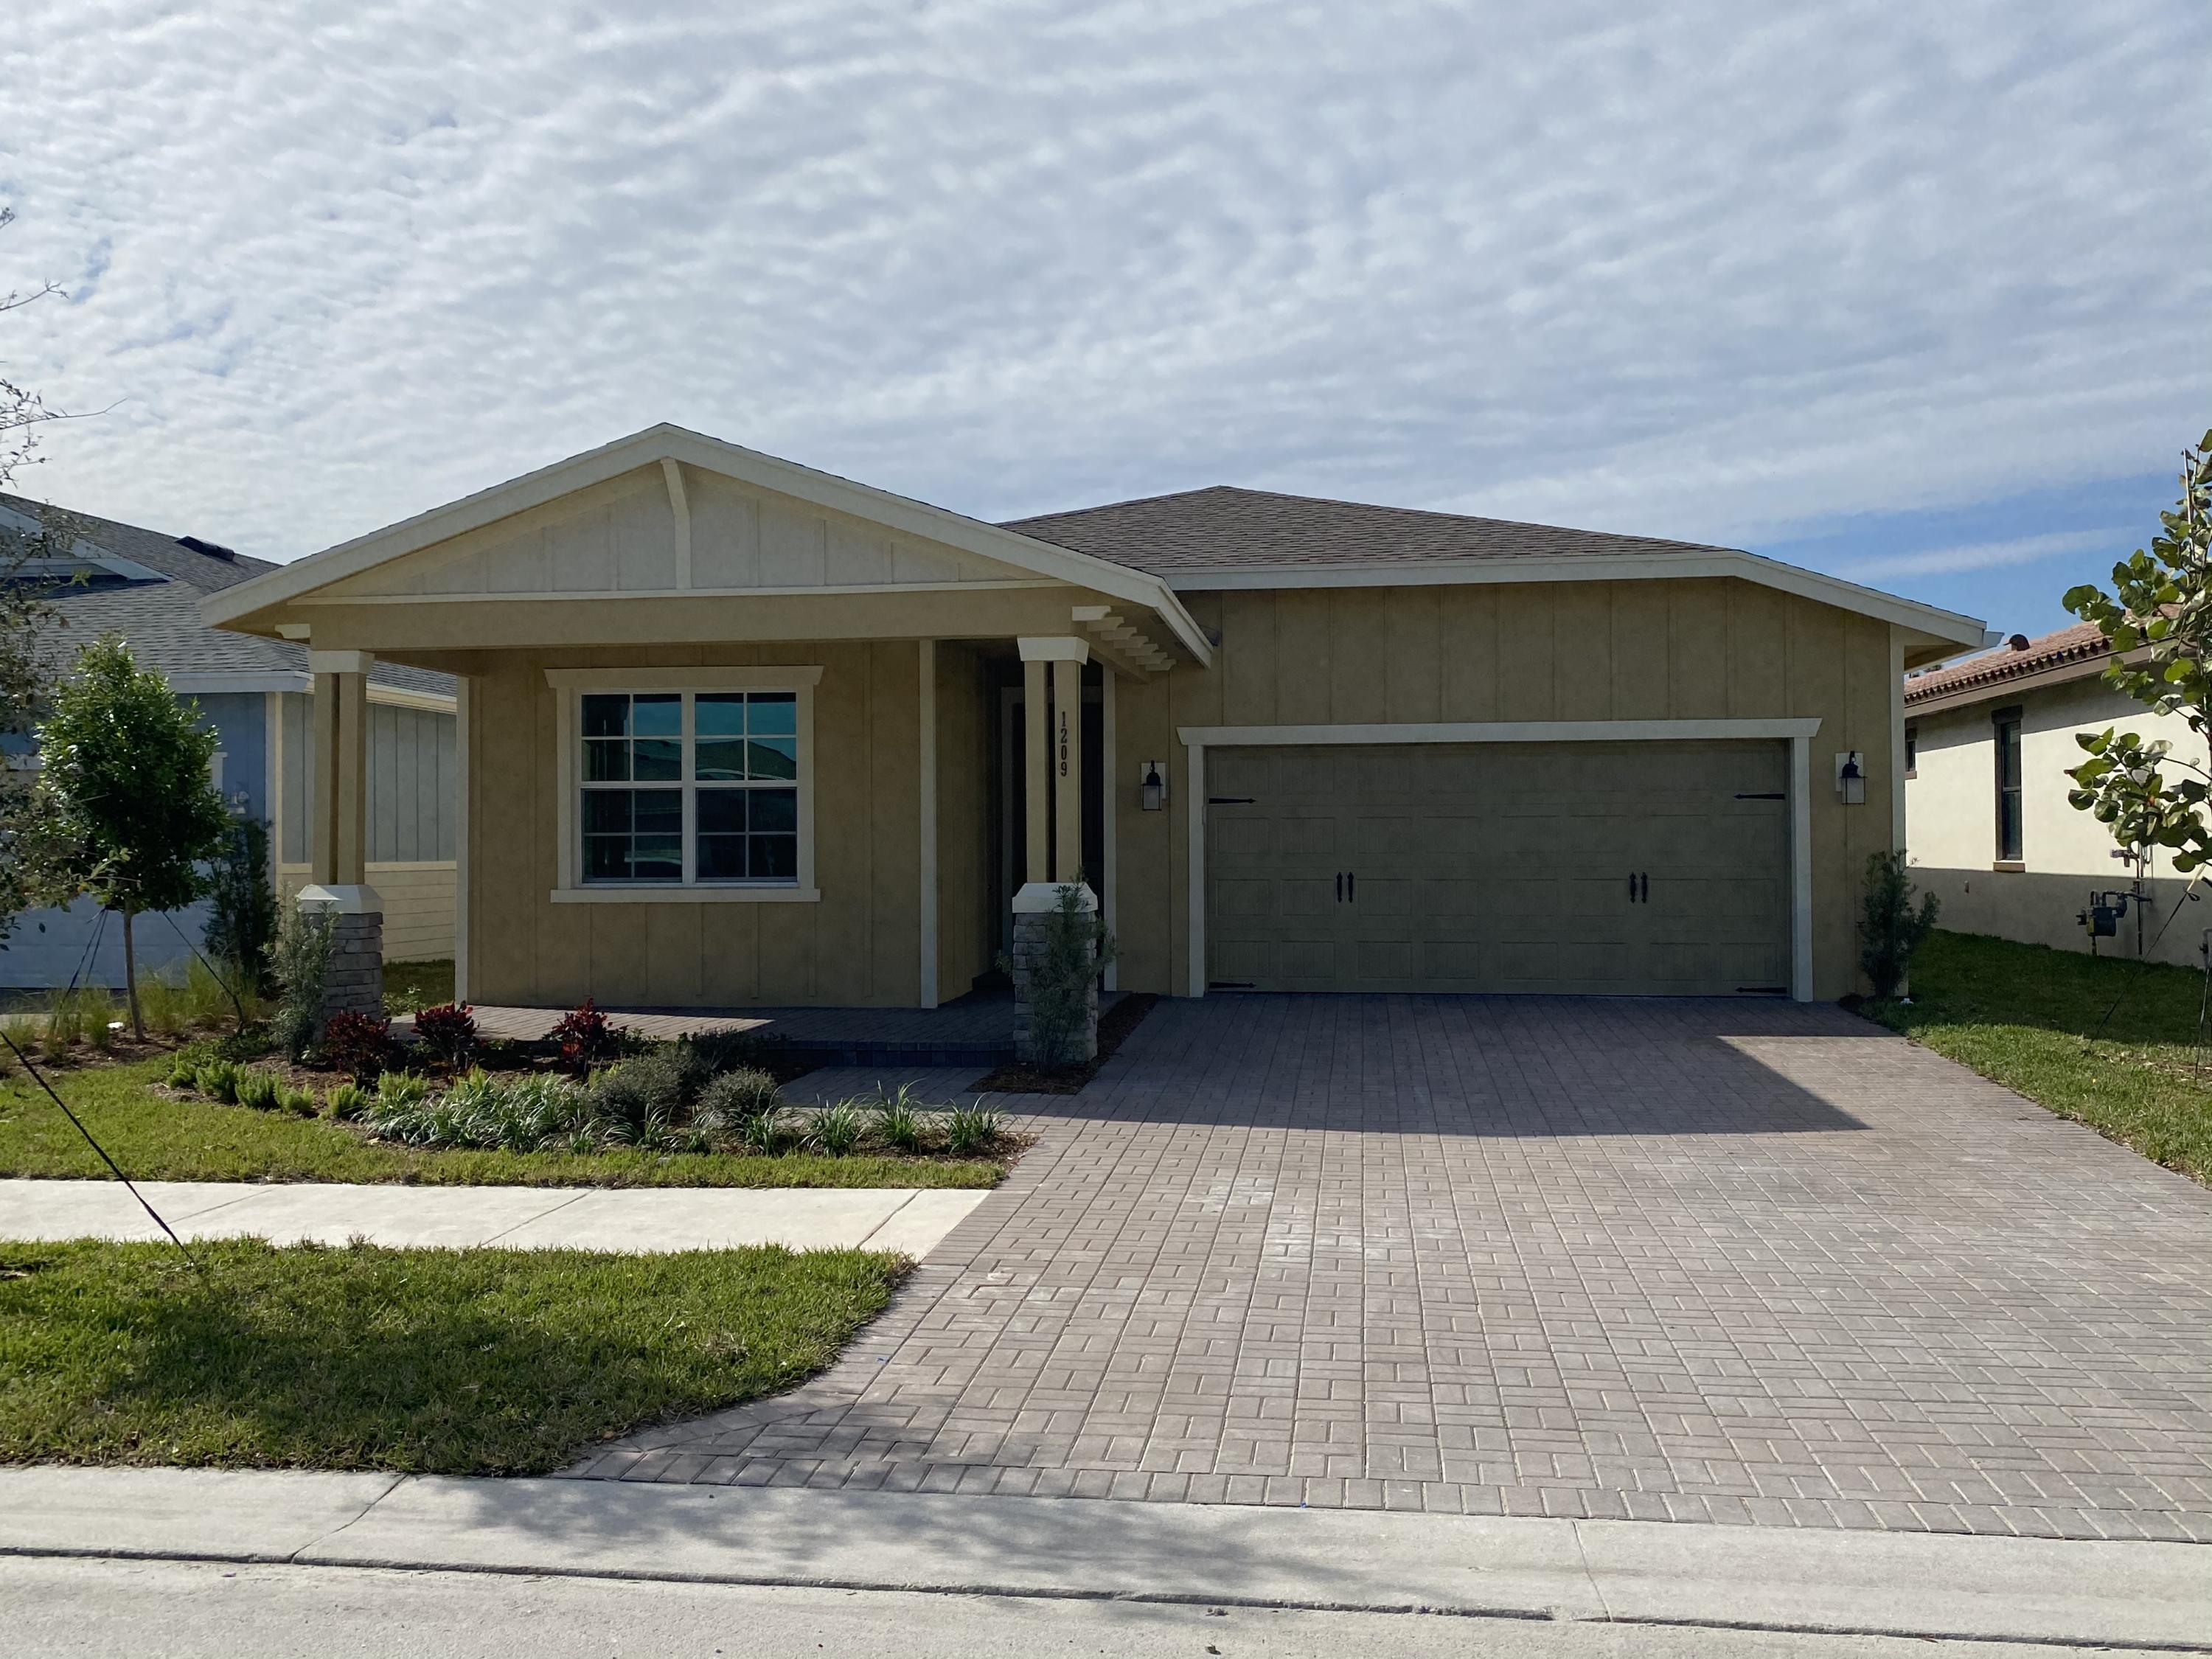 Home for sale in Arden Loxahatchee Florida